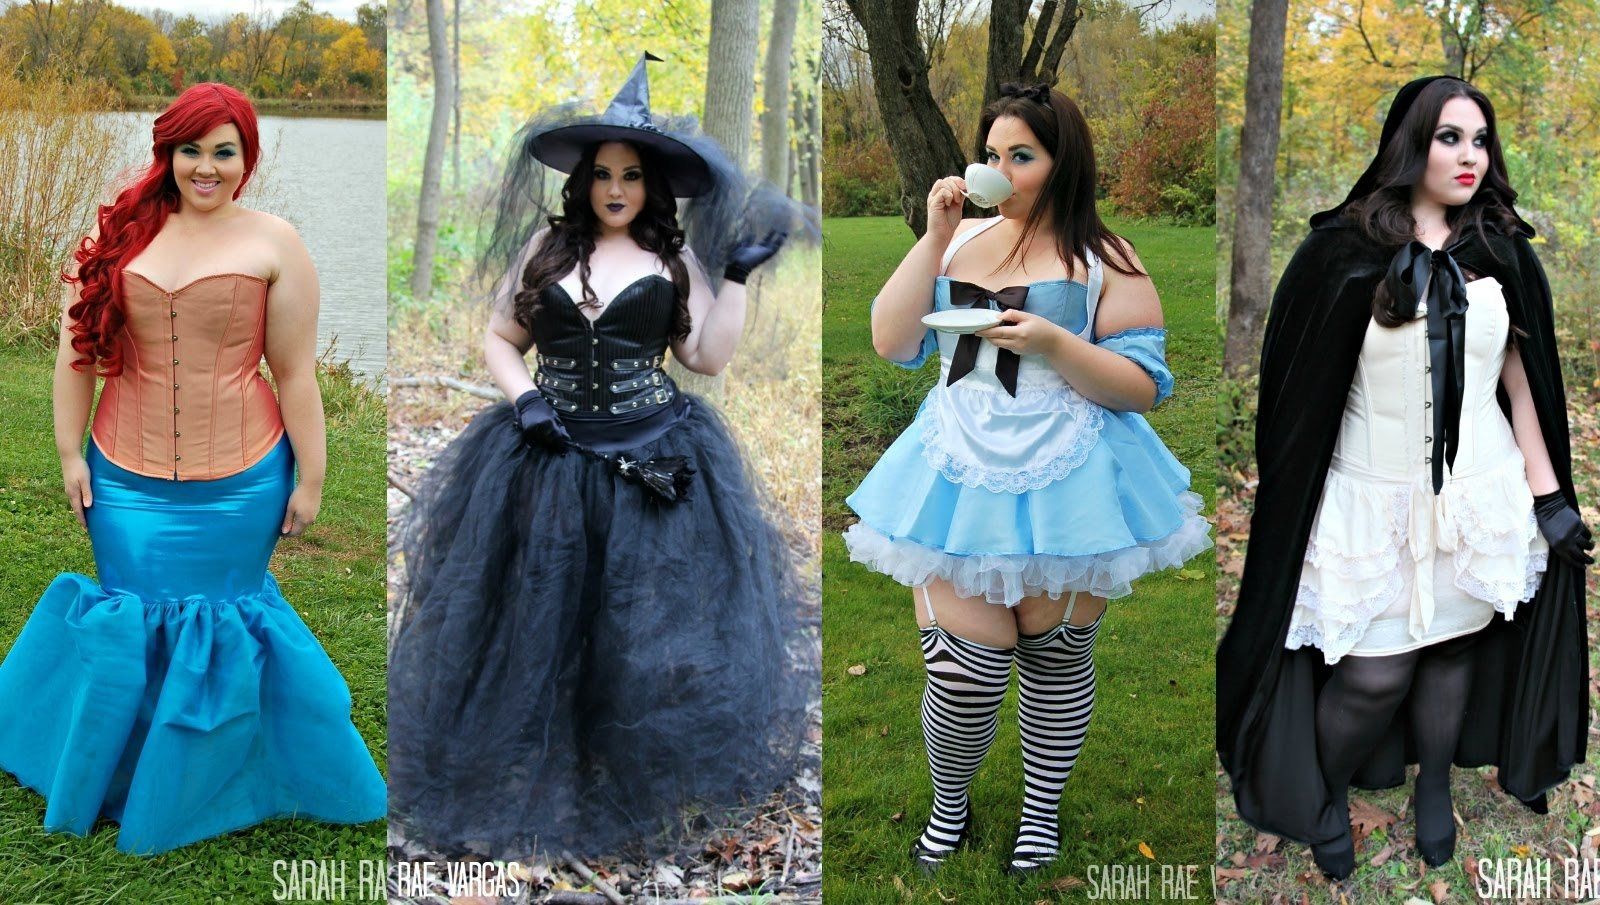 10 Pretty Homemade Plus Size Costume Ideas 57 halloween costume ideas for plus size women homemade sexy 2020